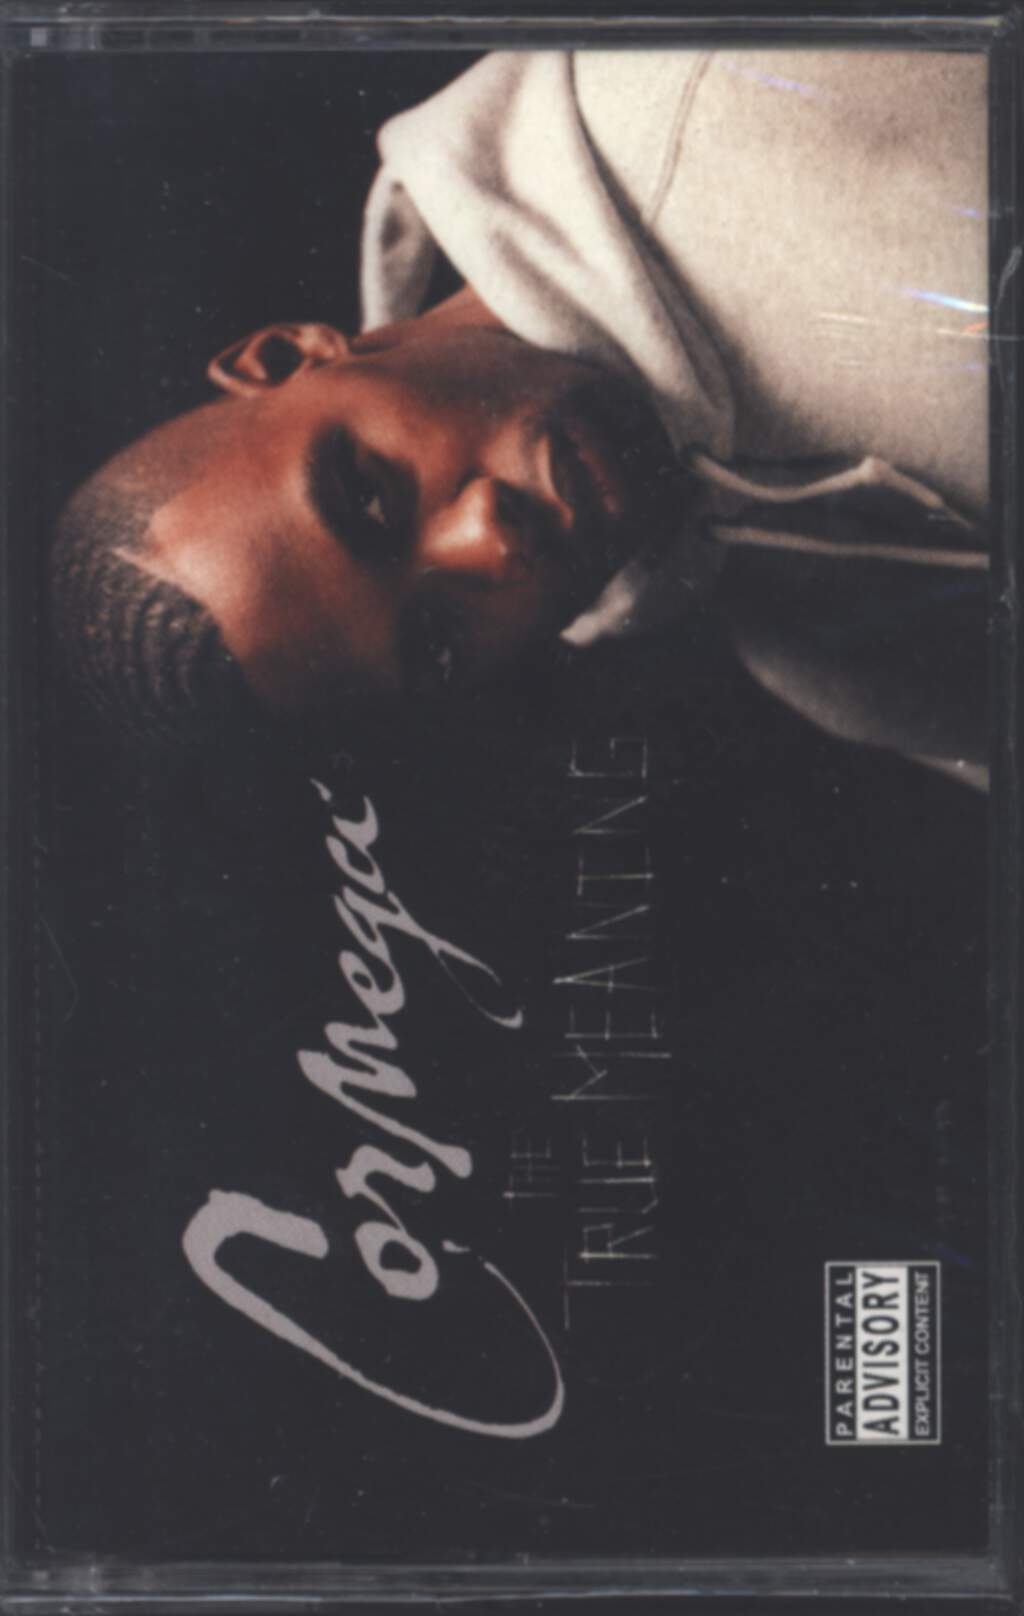 Cormega: The True Meaning, Compact Cassette